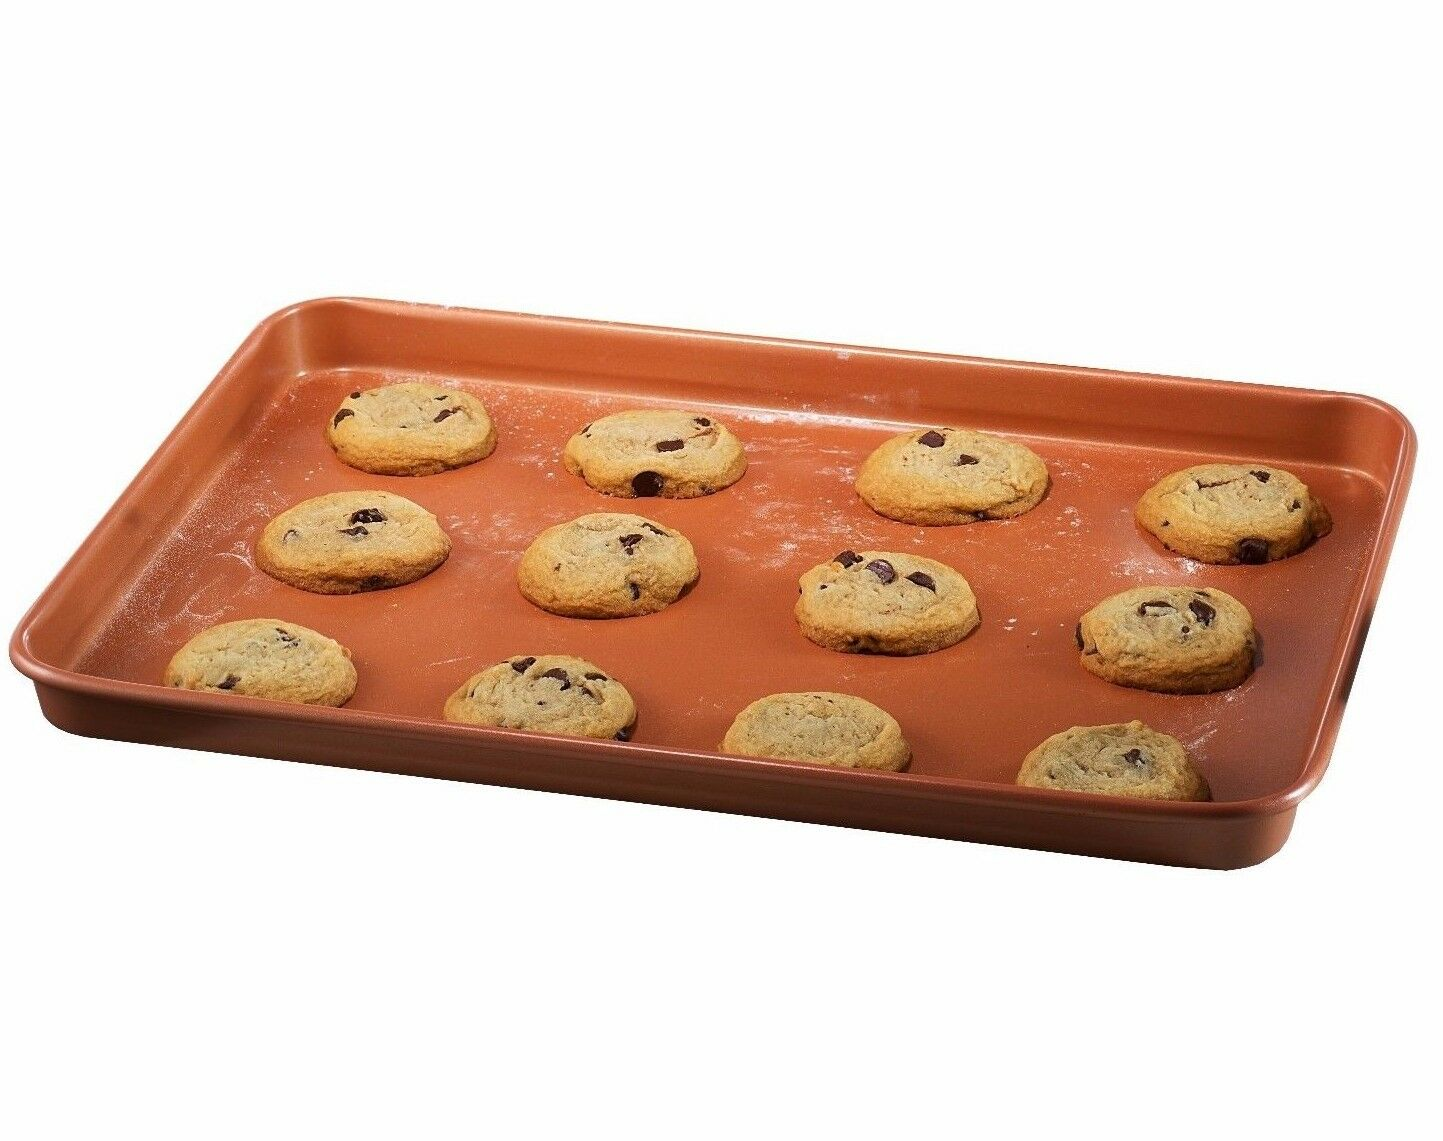 Gotham Steel Nonstick Copper Cookie Sheet and Jelly Roll Bak